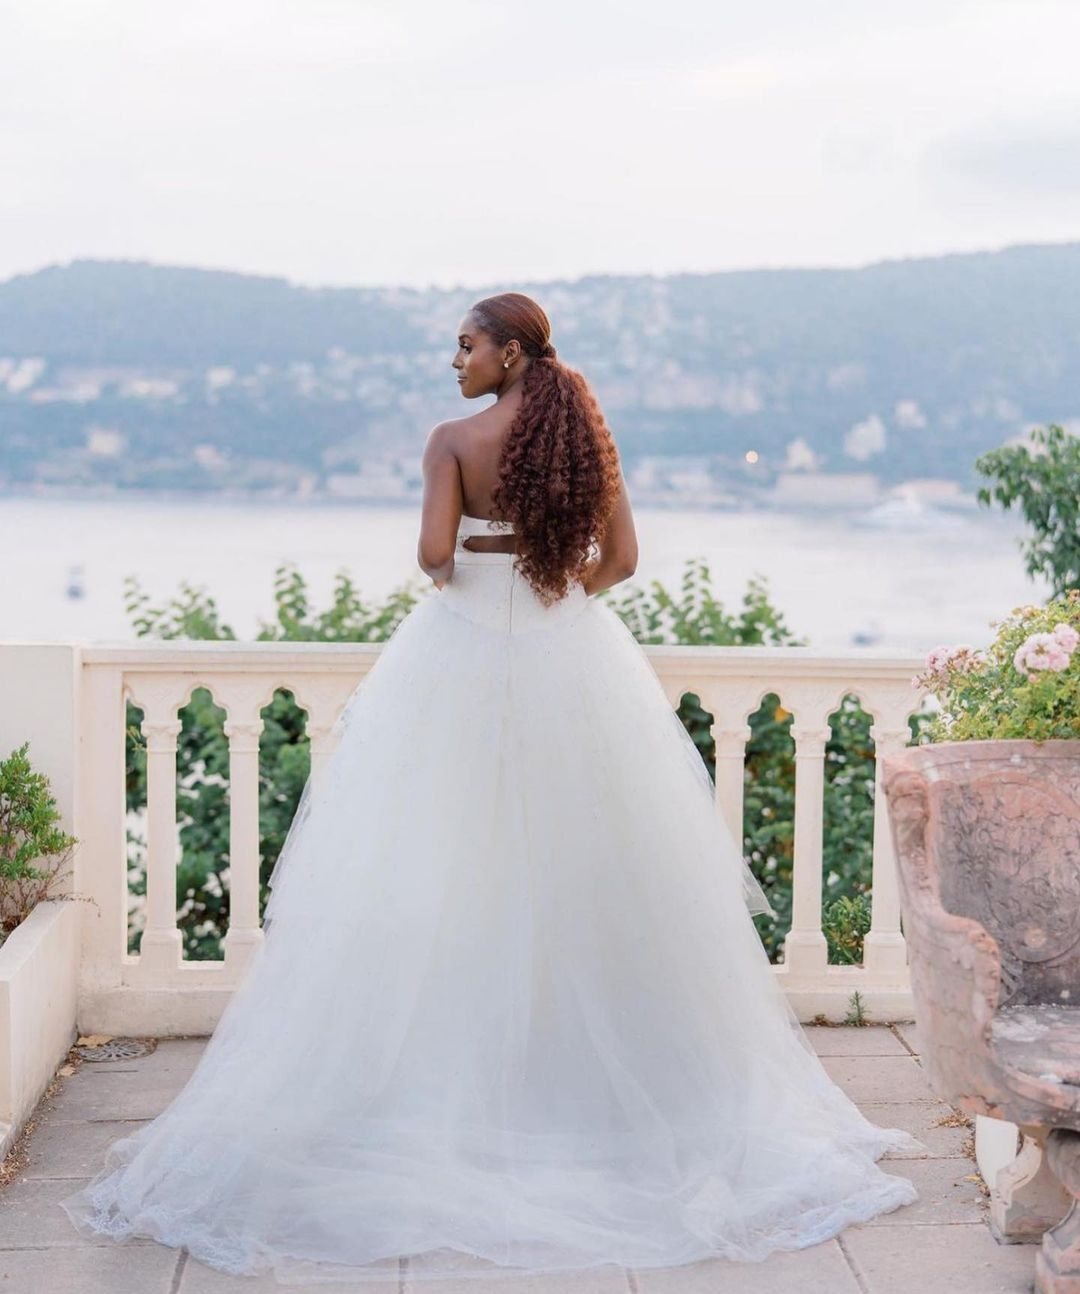 American Actress Issa Rae marries Businessman Louis Diame in intimate ceremony 8